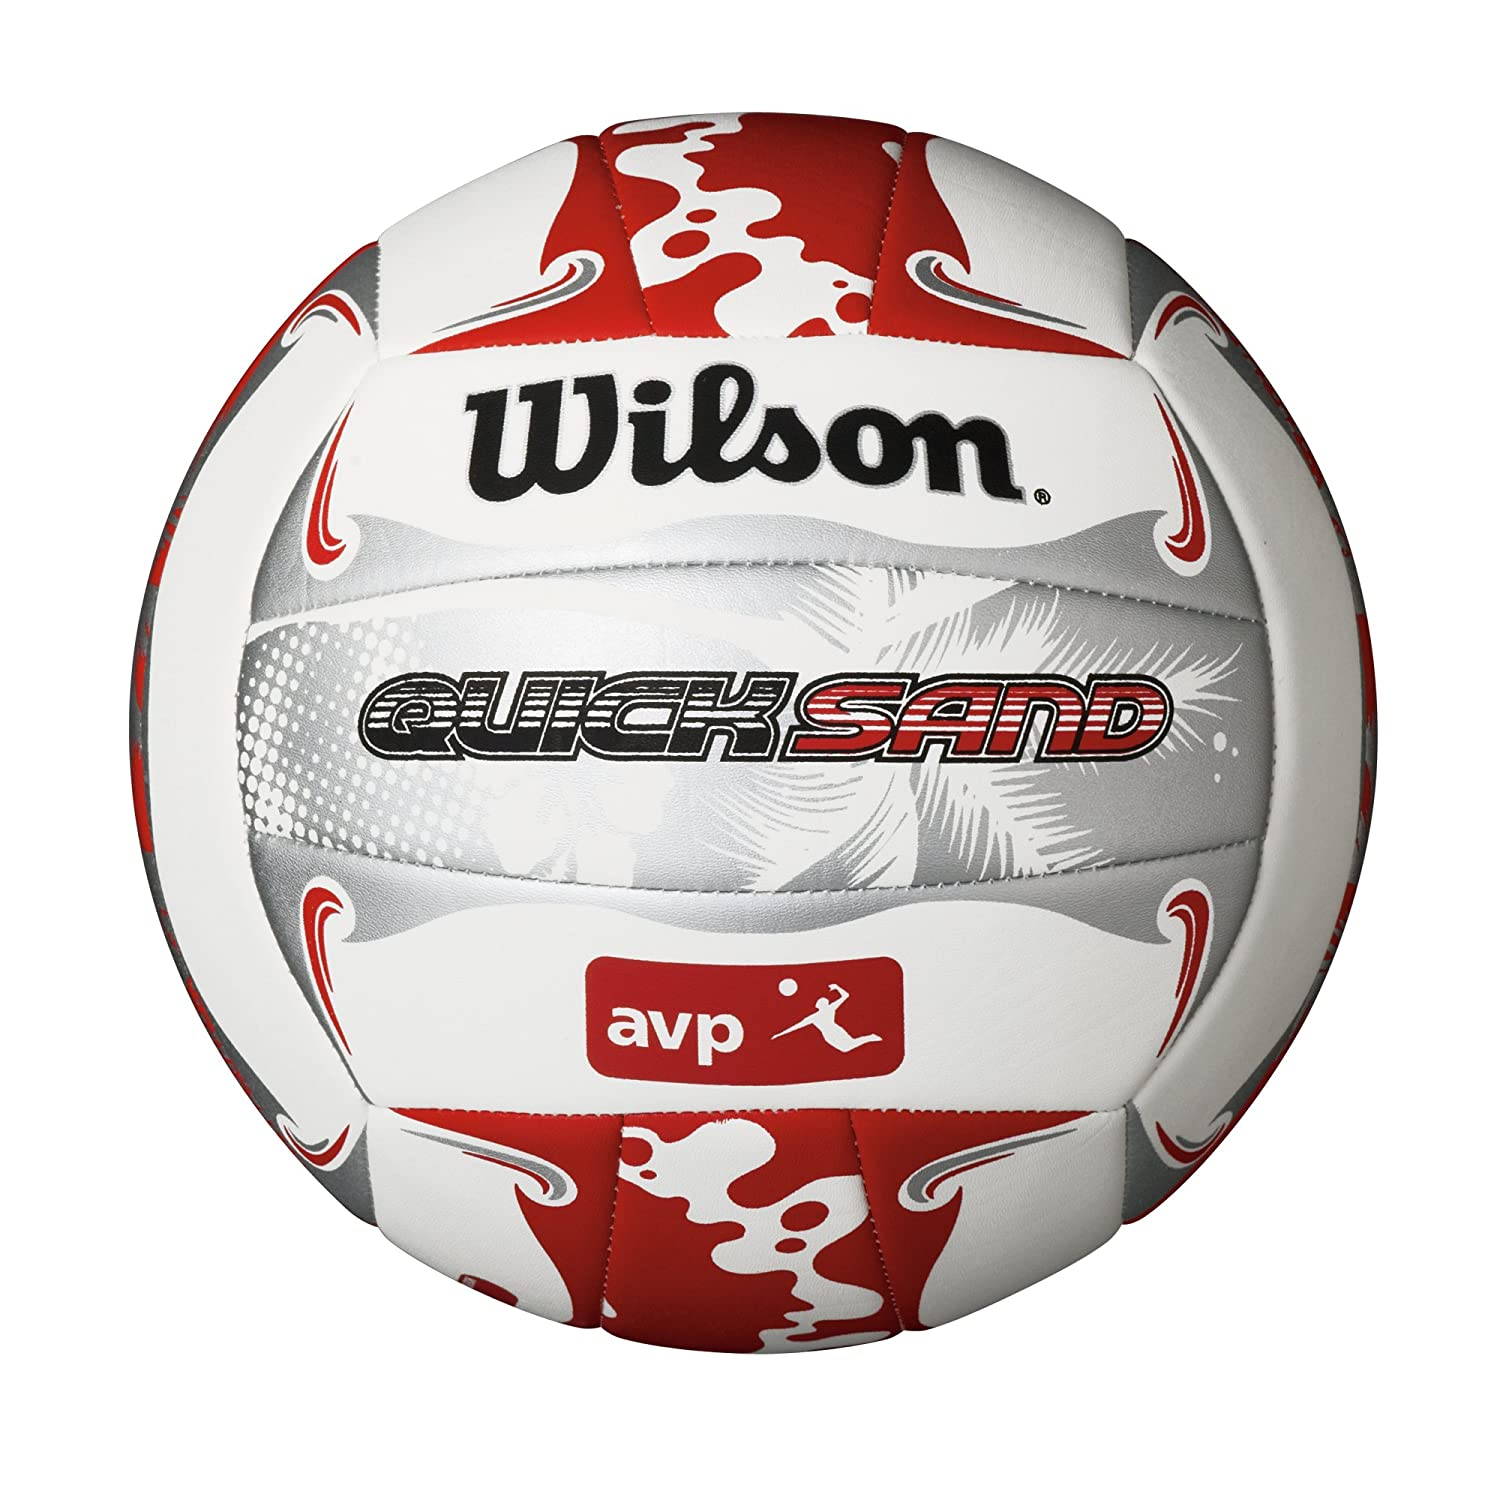 Wilson Beach-Volley, AVP Quicksand Aloha